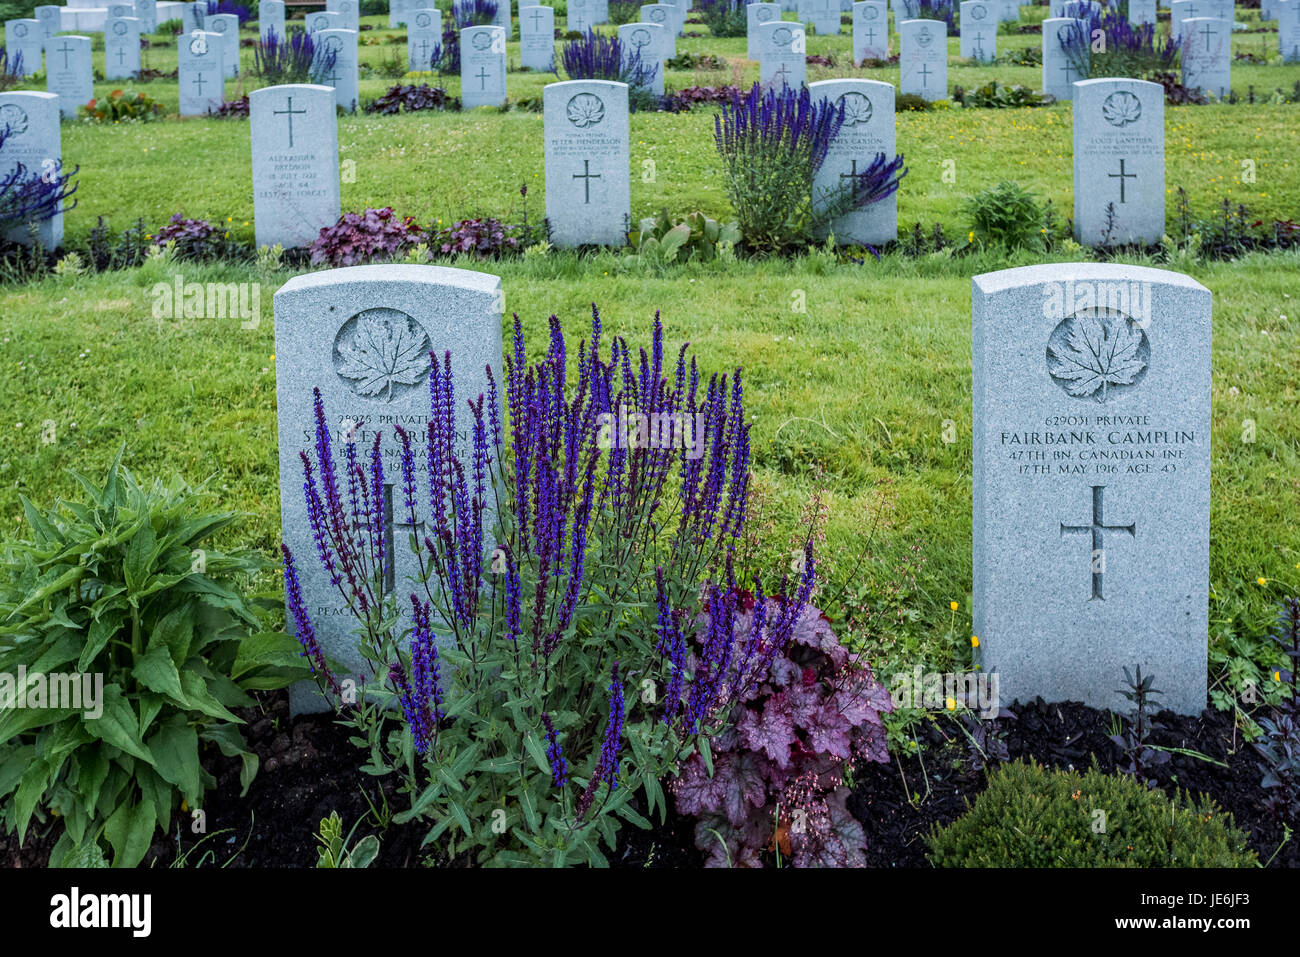 Gravesites of Canadian Infantry soldiers, Mountain View Cemetery, Vancouver, British Columbia, Canada, - Stock Image